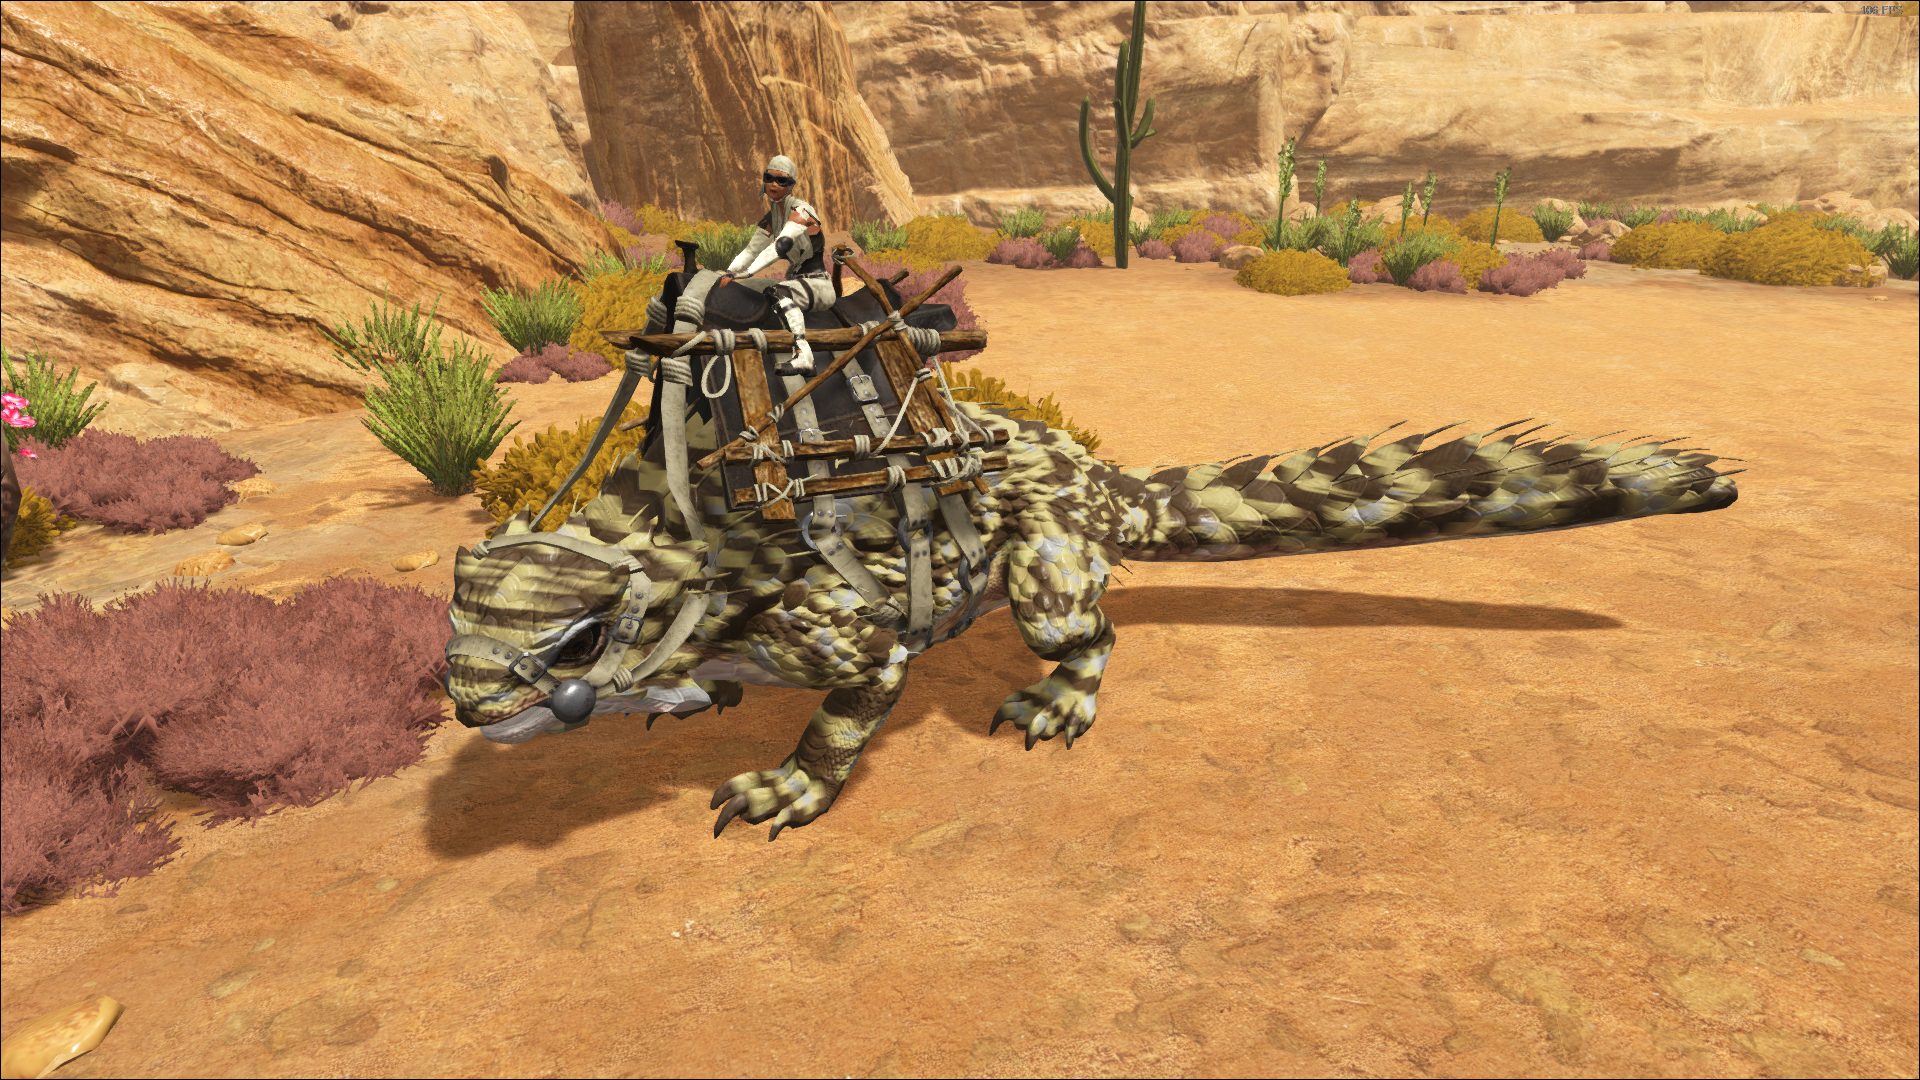 1478040891_ark-survival-evolved-screenshot-2016-11-02-00-52-55-19-jpg